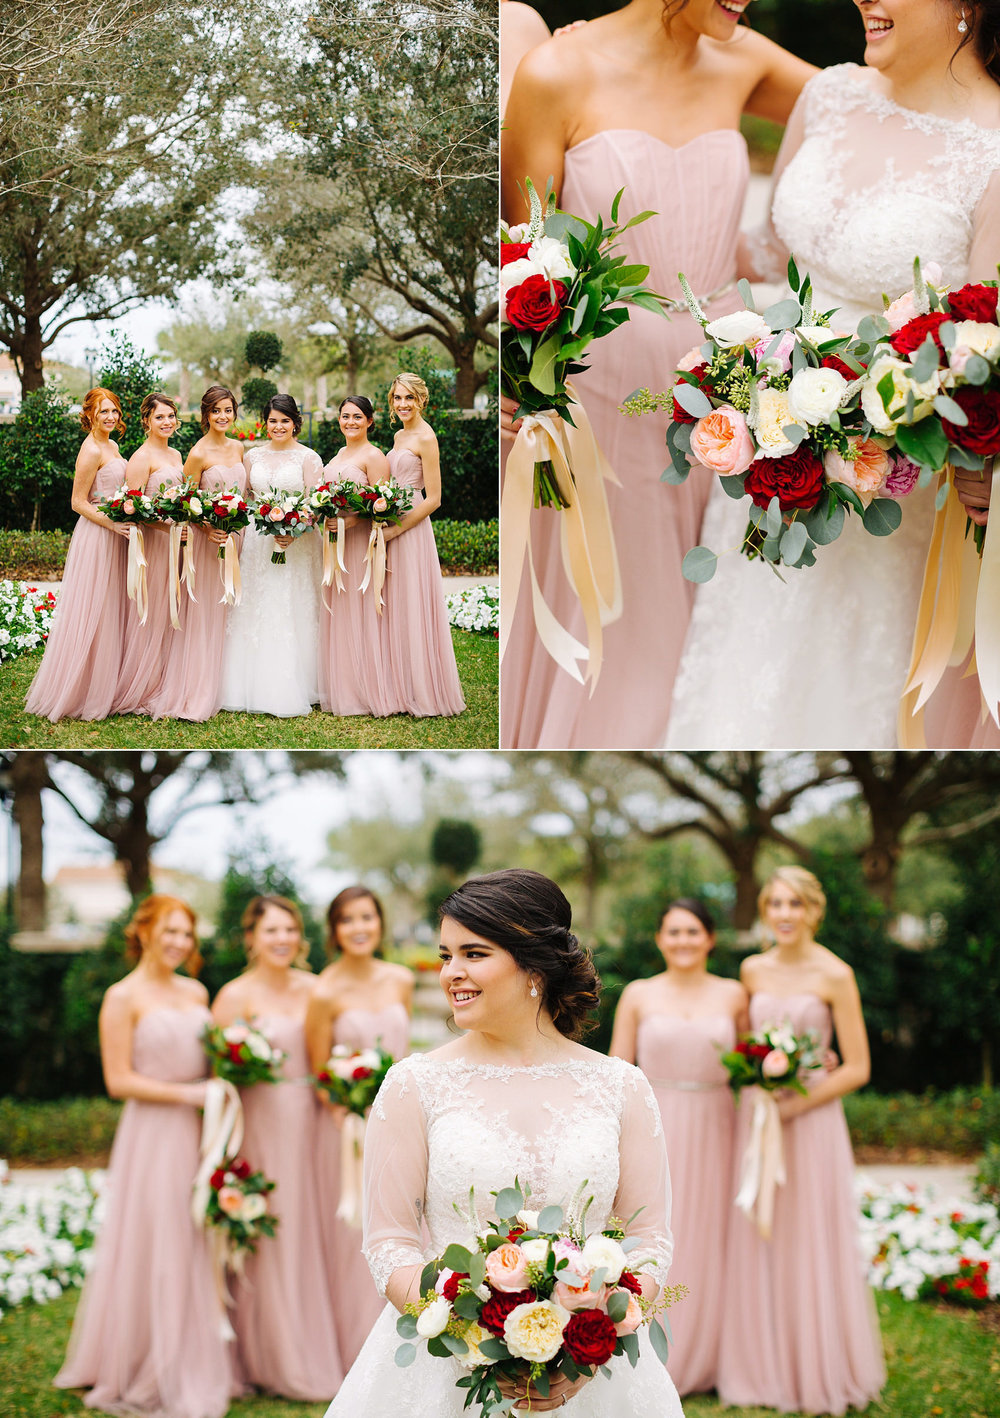 palmetto club wedding tampa wedding photographer botanica design